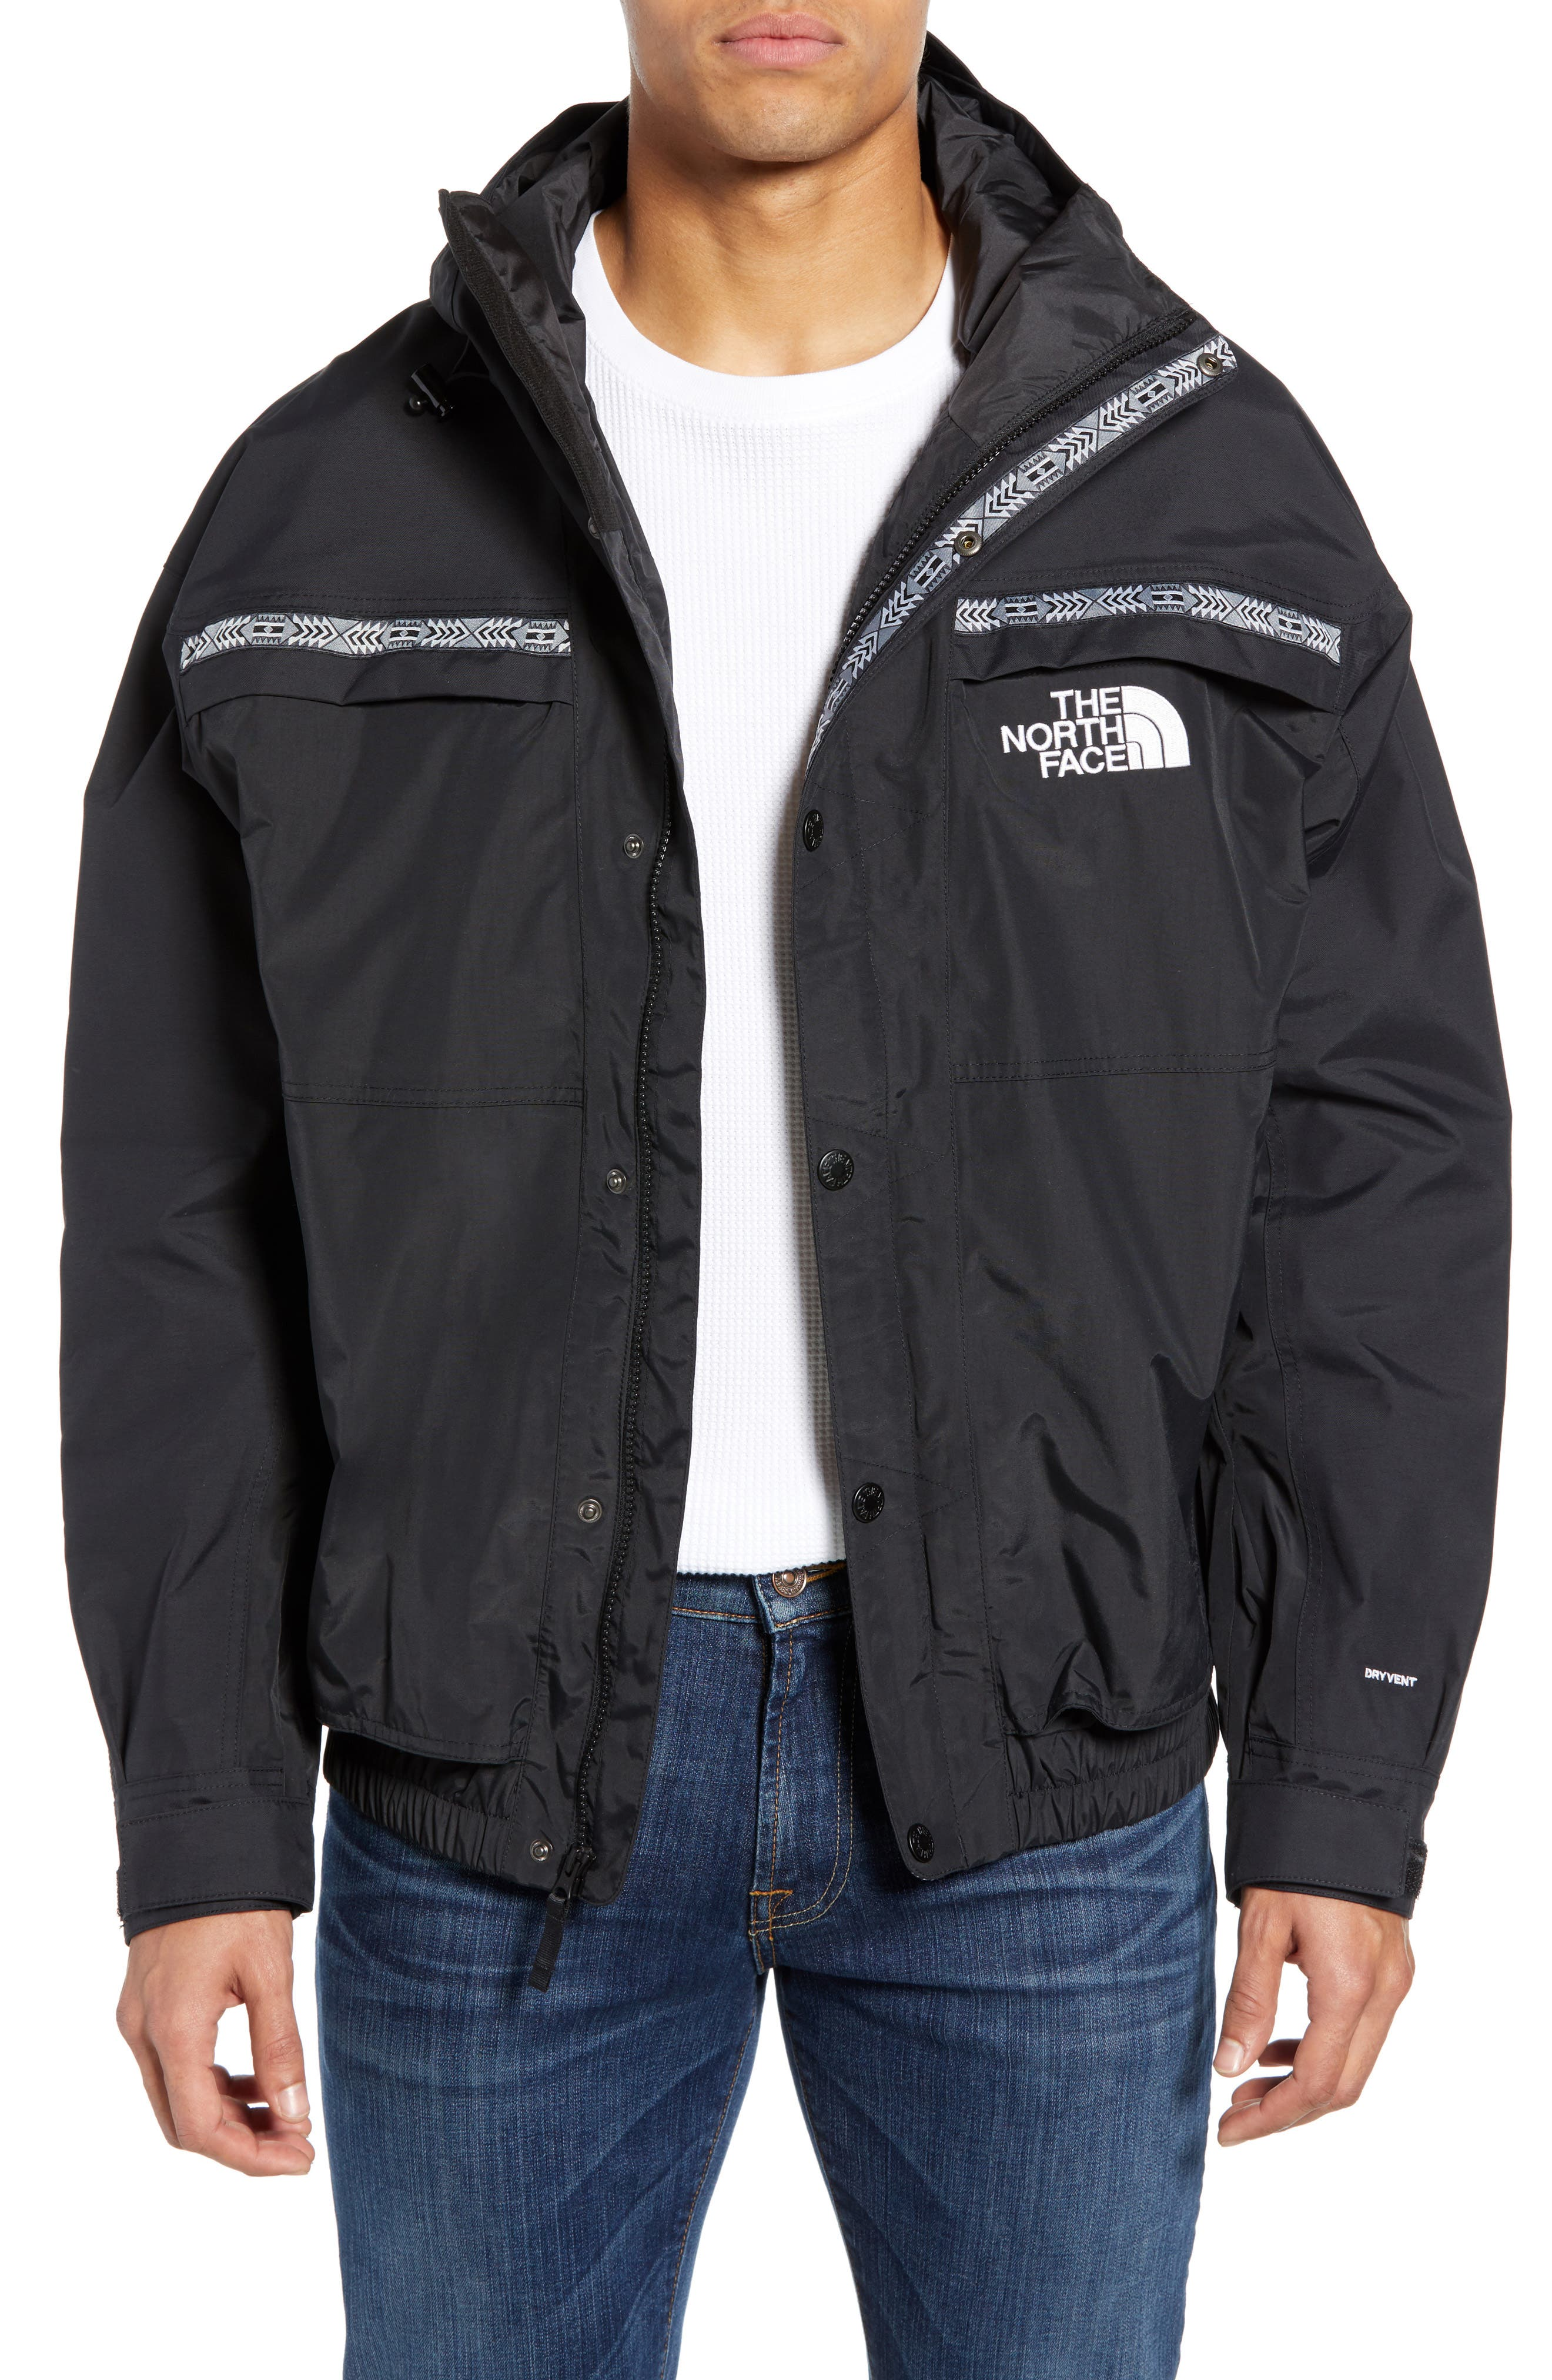 The North Face 1992 Rage Collection Rain Jacket